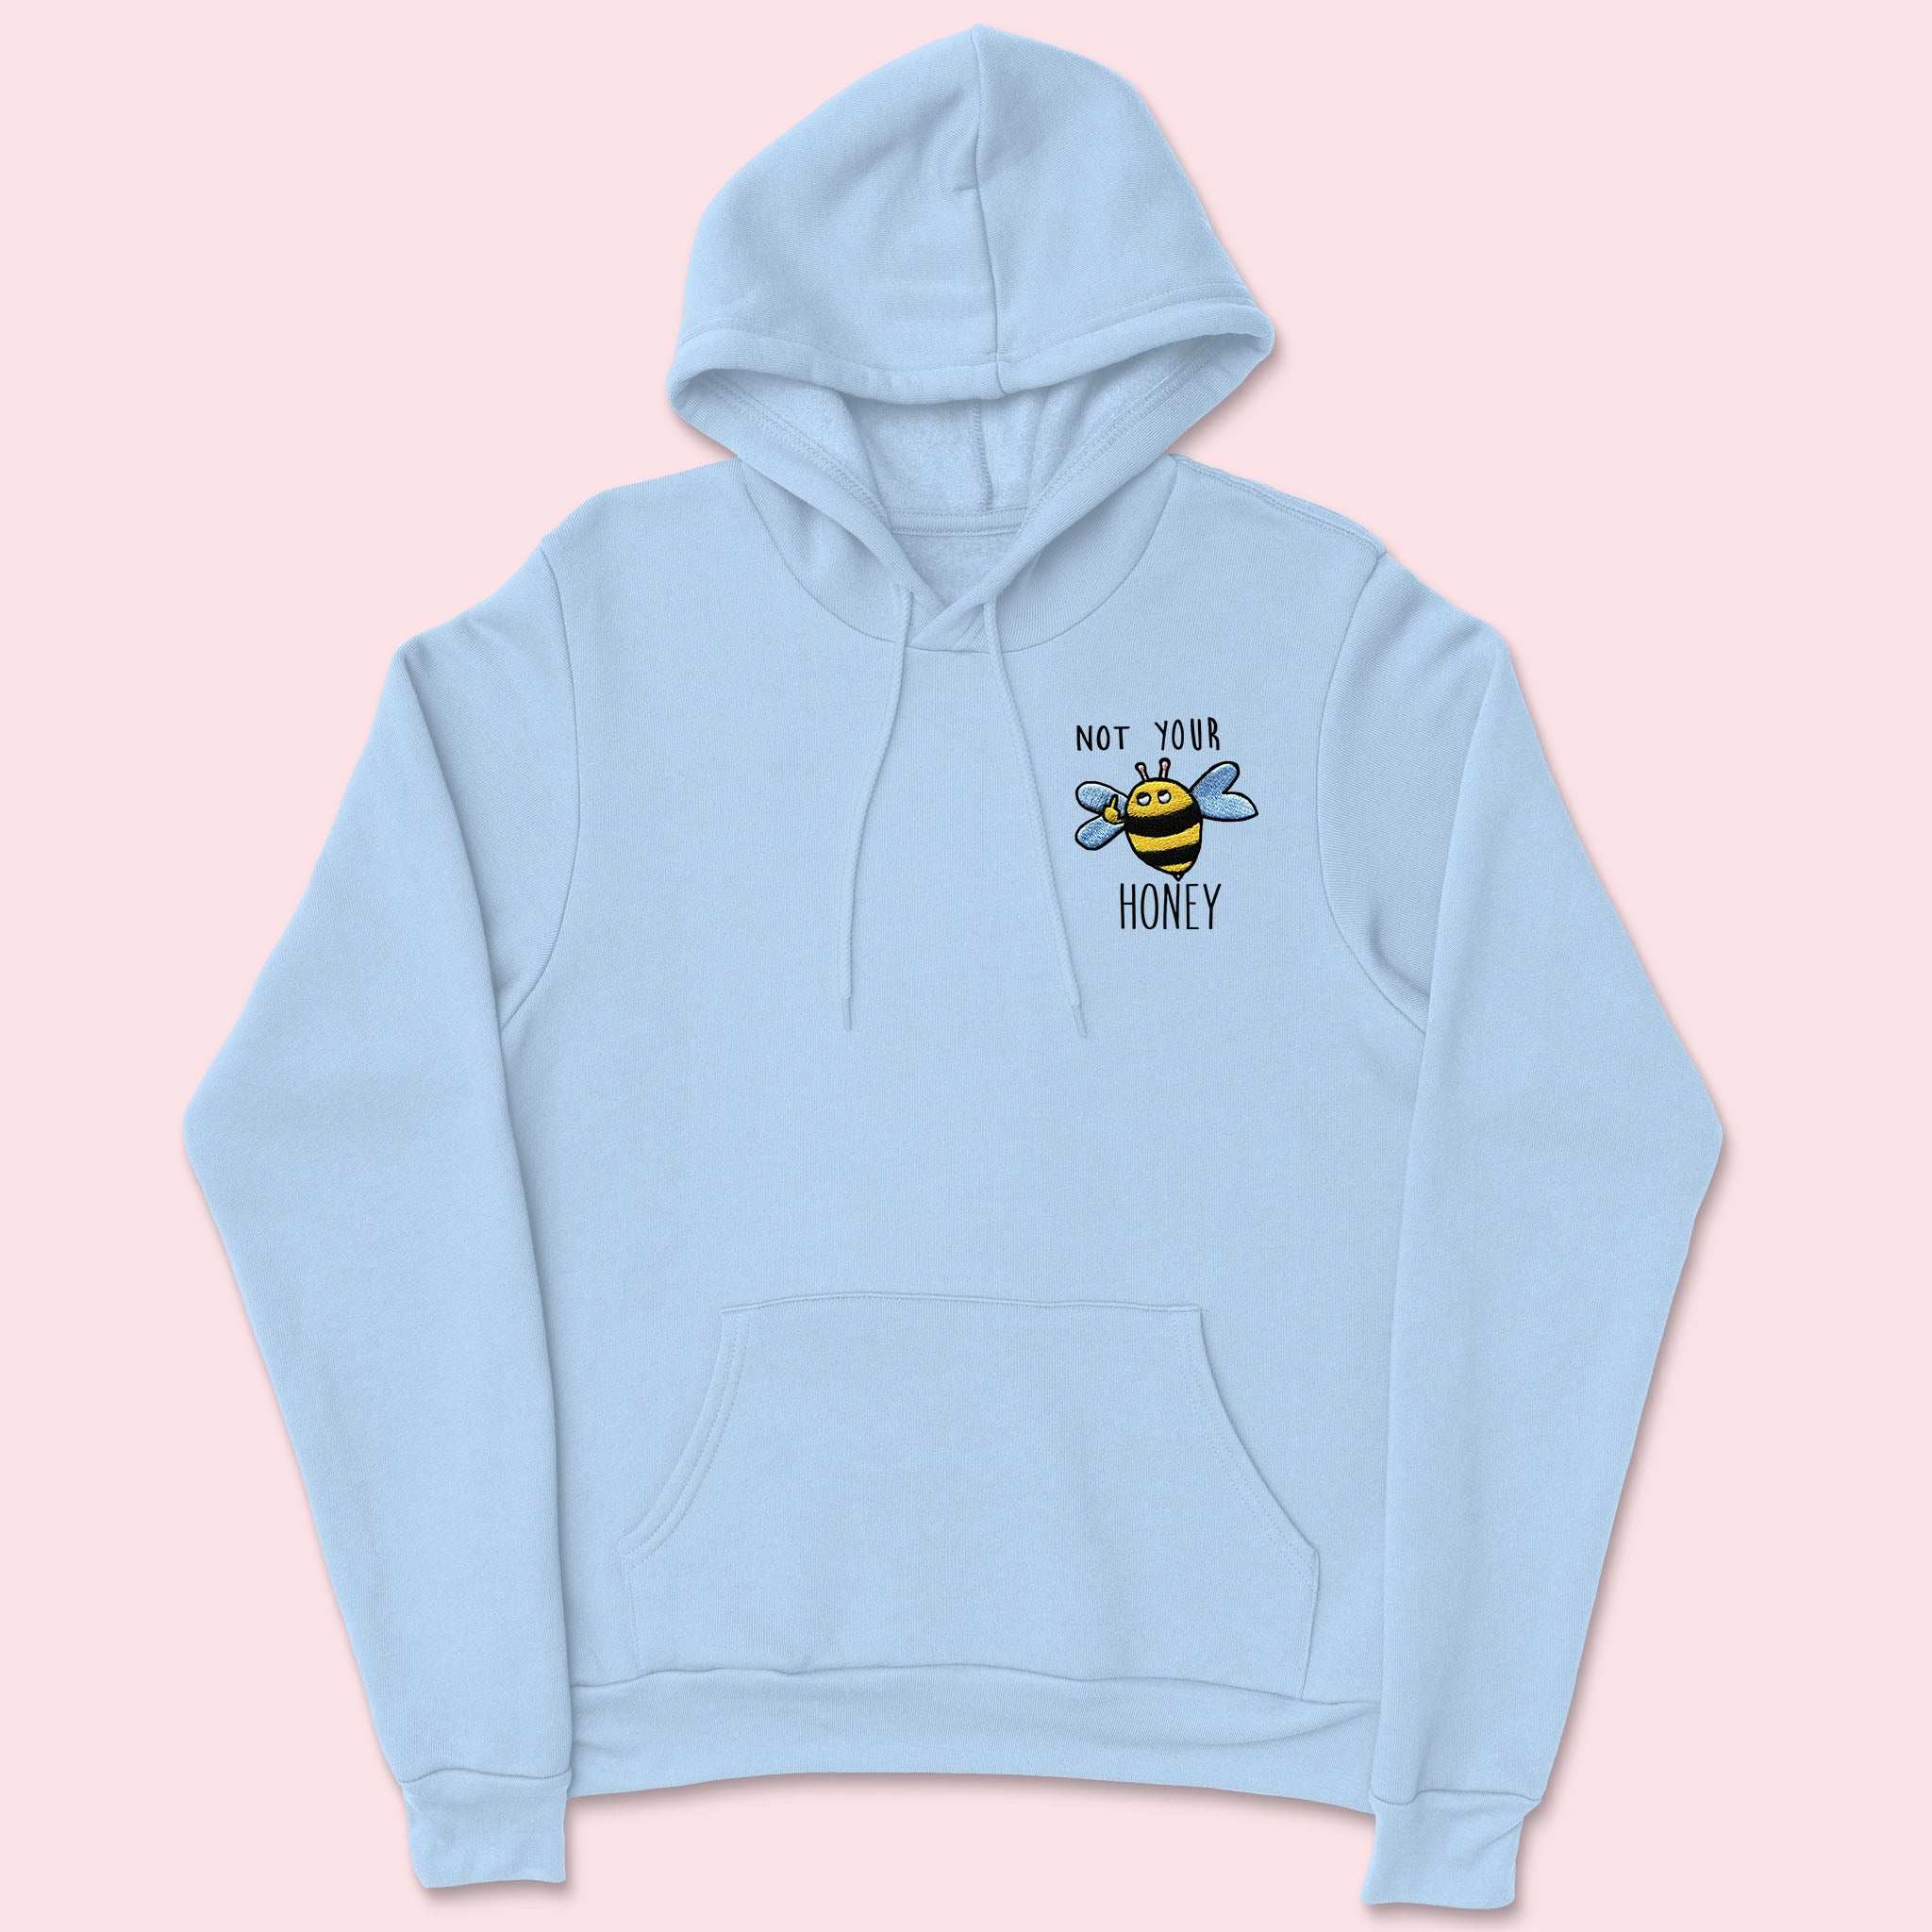 NOT YOUR HONEY- Organic Embroidered Unisex Hoodie